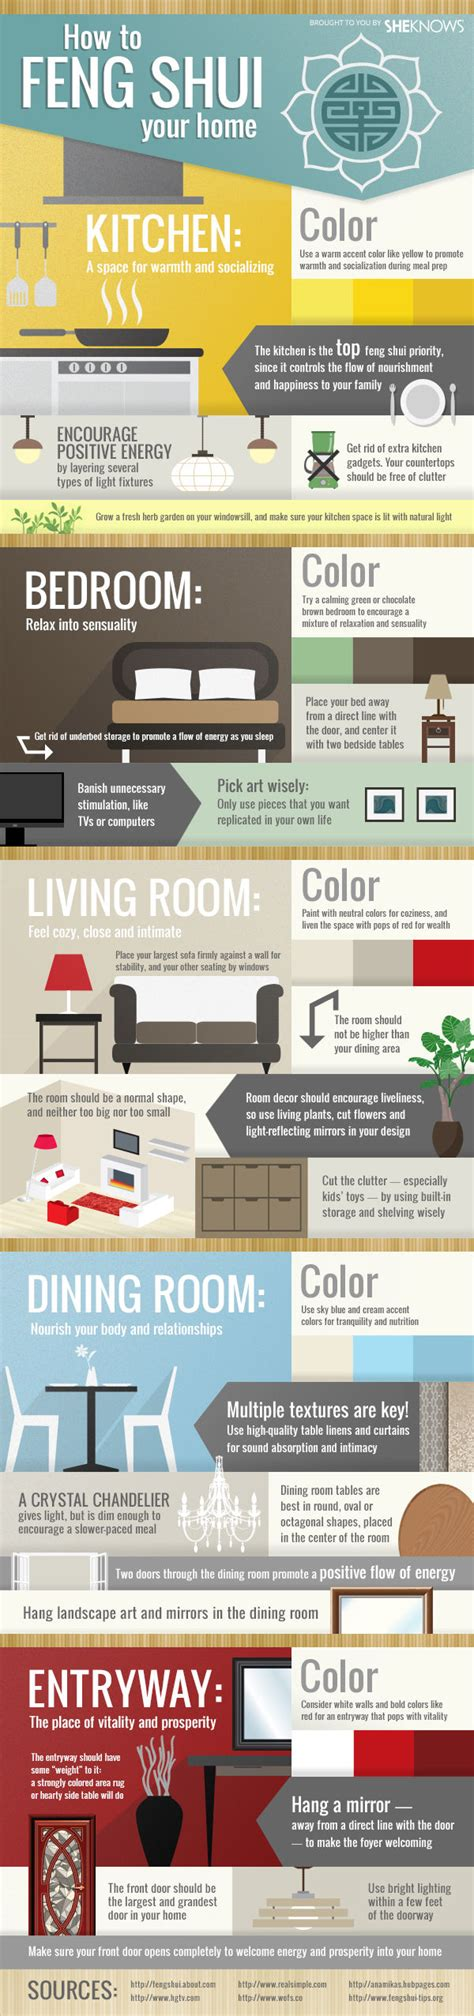 feng shui home design how to feng shui your home pictures photos and images